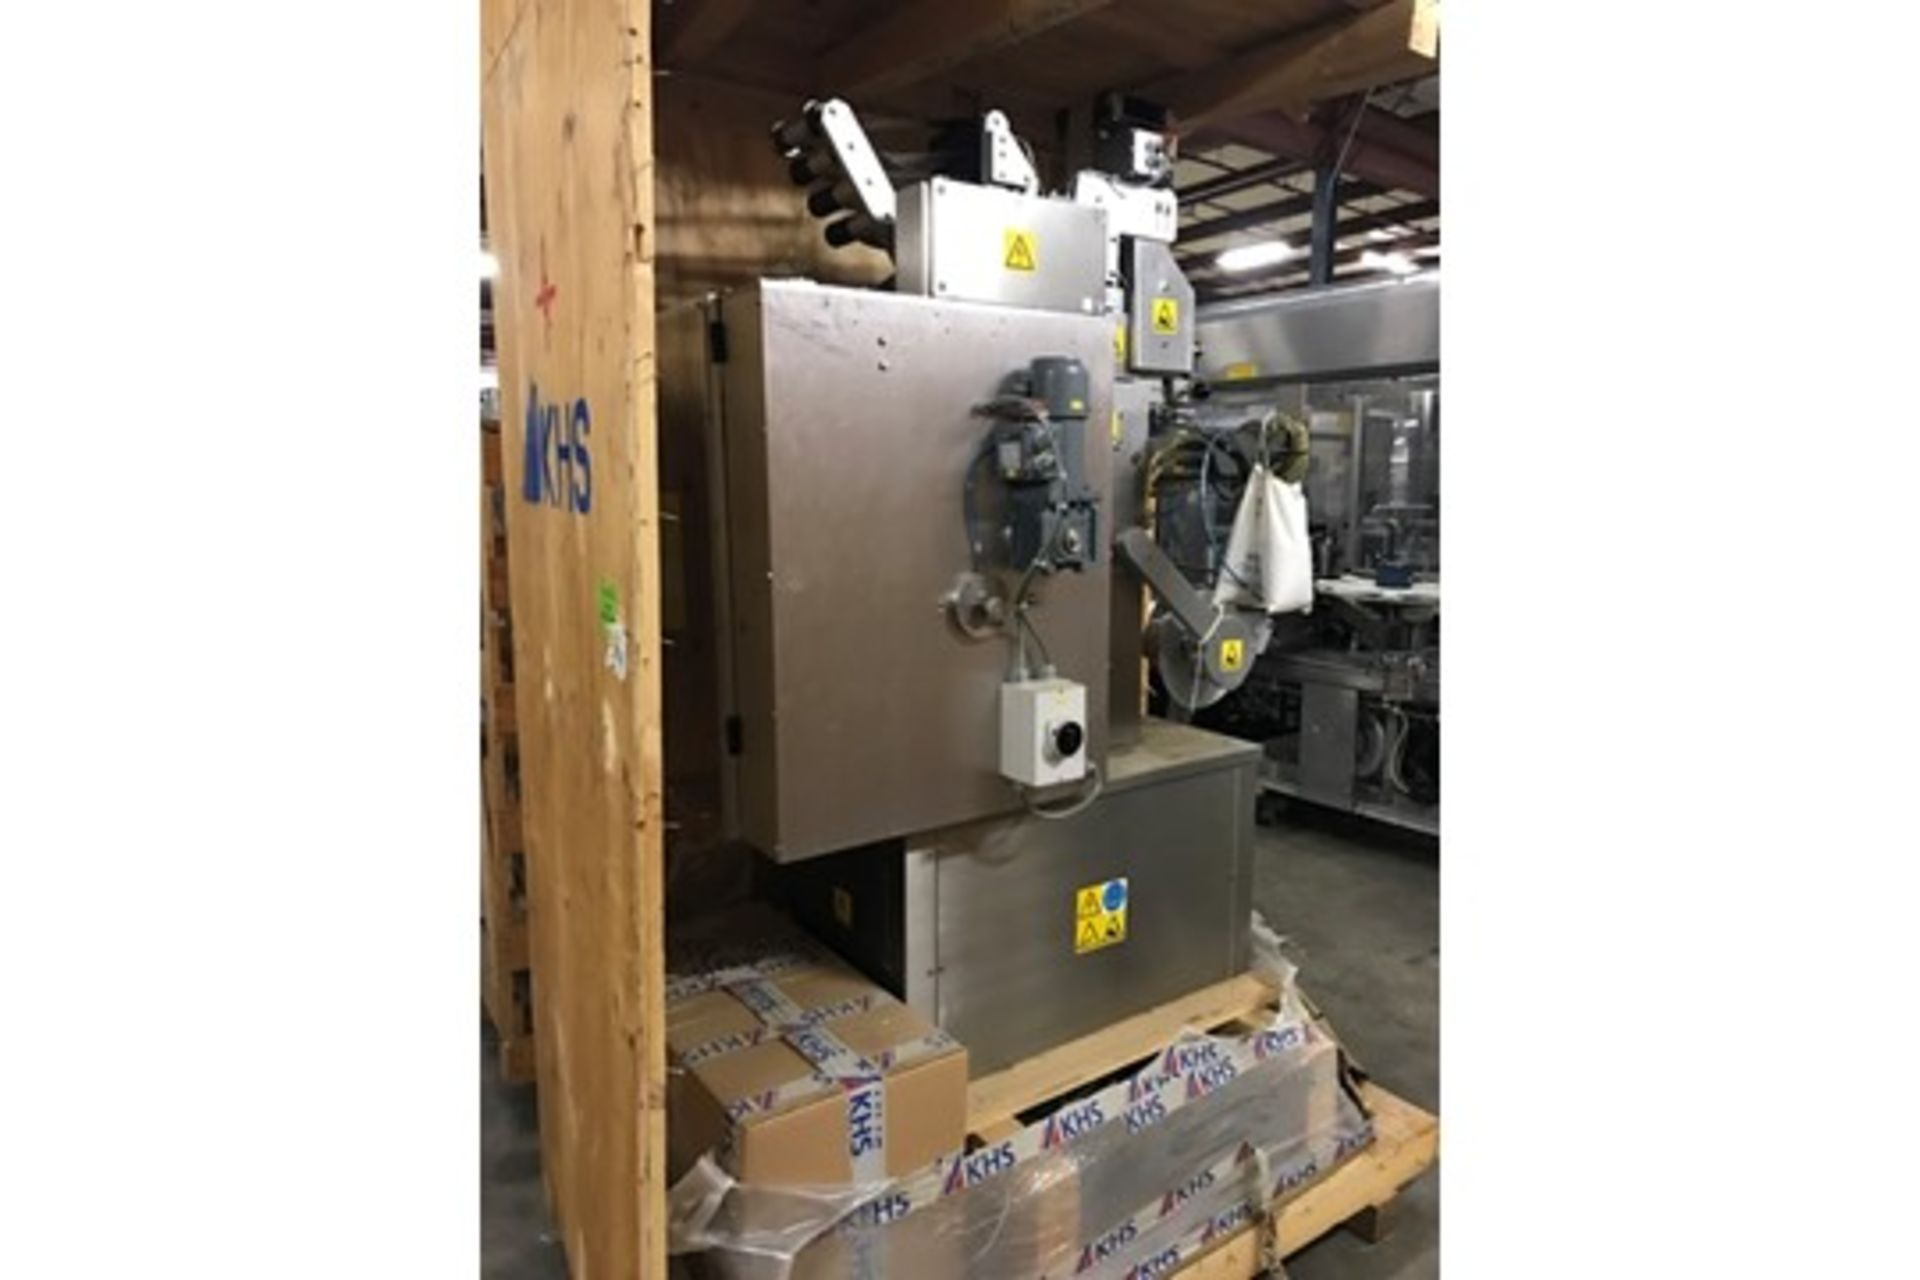 Lot 22 - 2007 Fords Packaging Systems PressStainless Steel Package, Includes Control Panel, Cap Size 33 x 4.